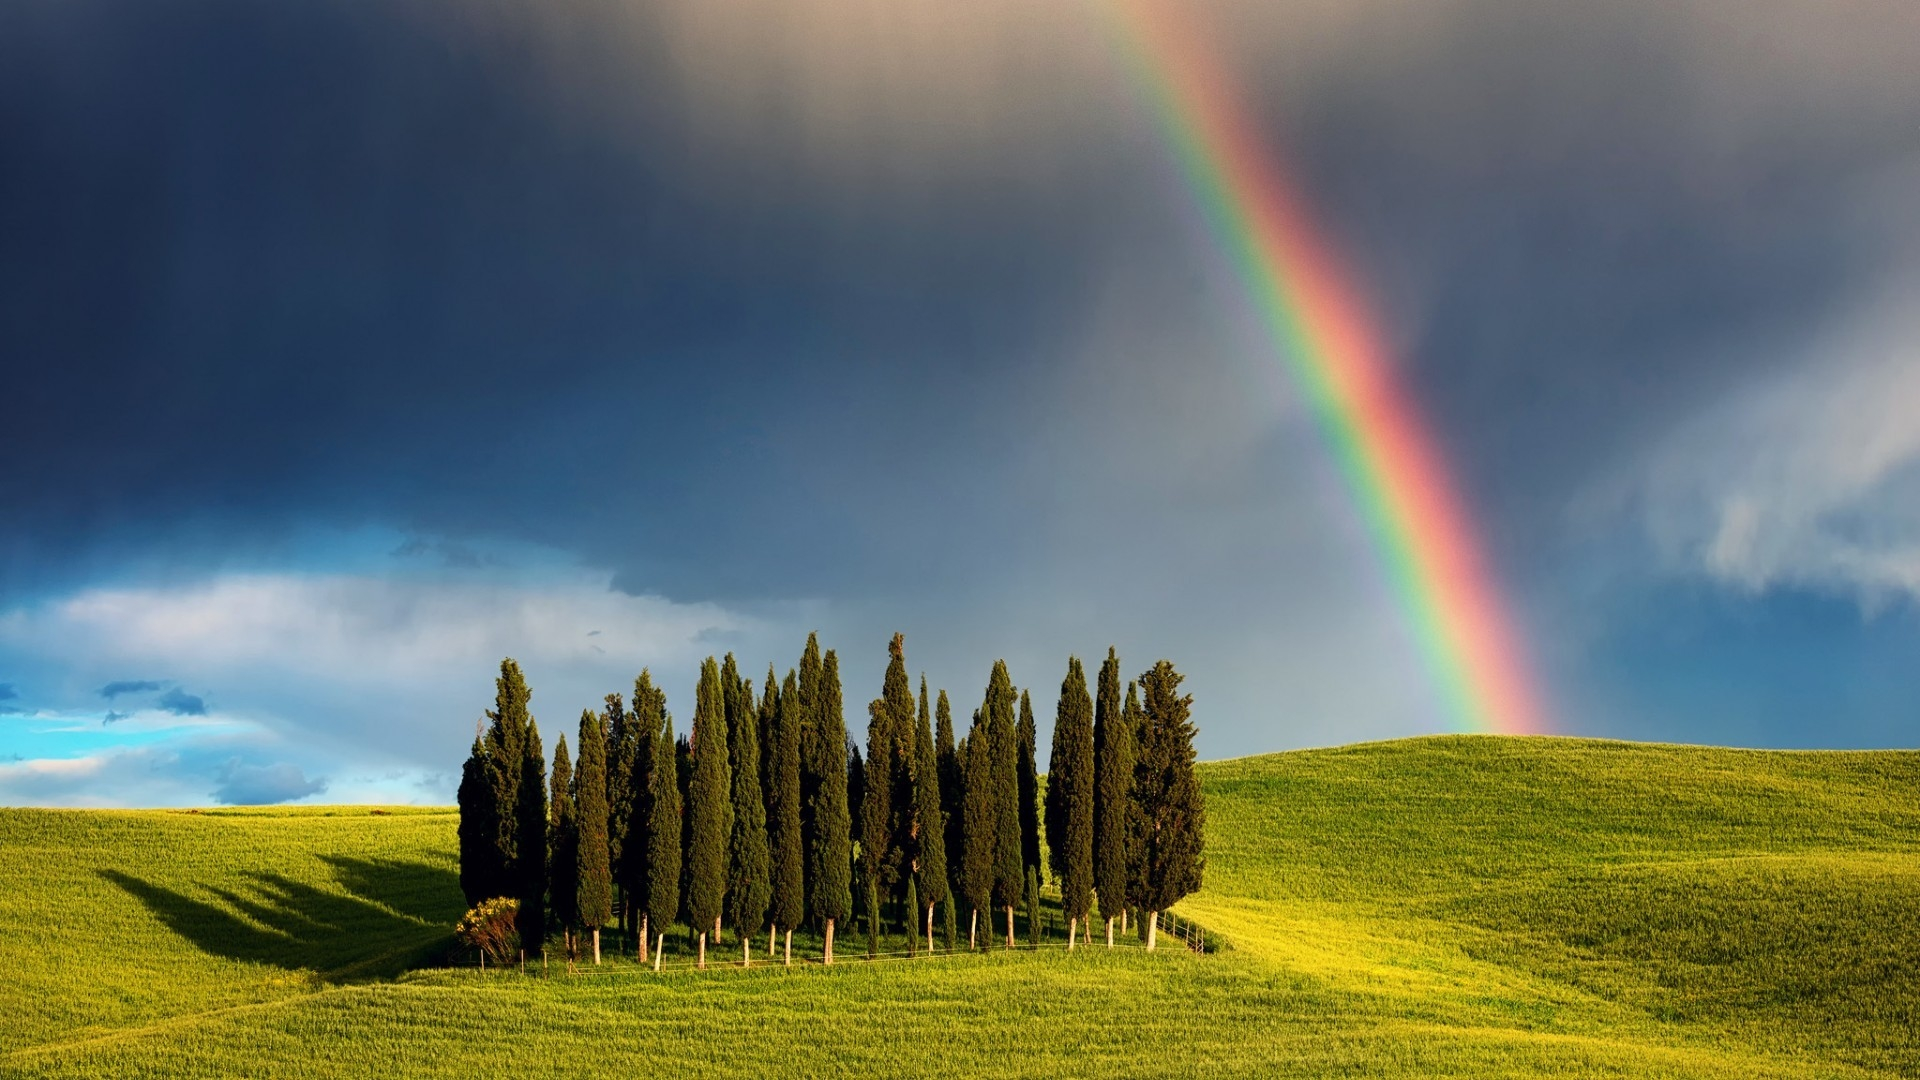 Rainbow over the few trees on hill wallpaper download 1920x1080 download wallpaper 1920x1080 rainbow over the few trees on hill voltagebd Gallery